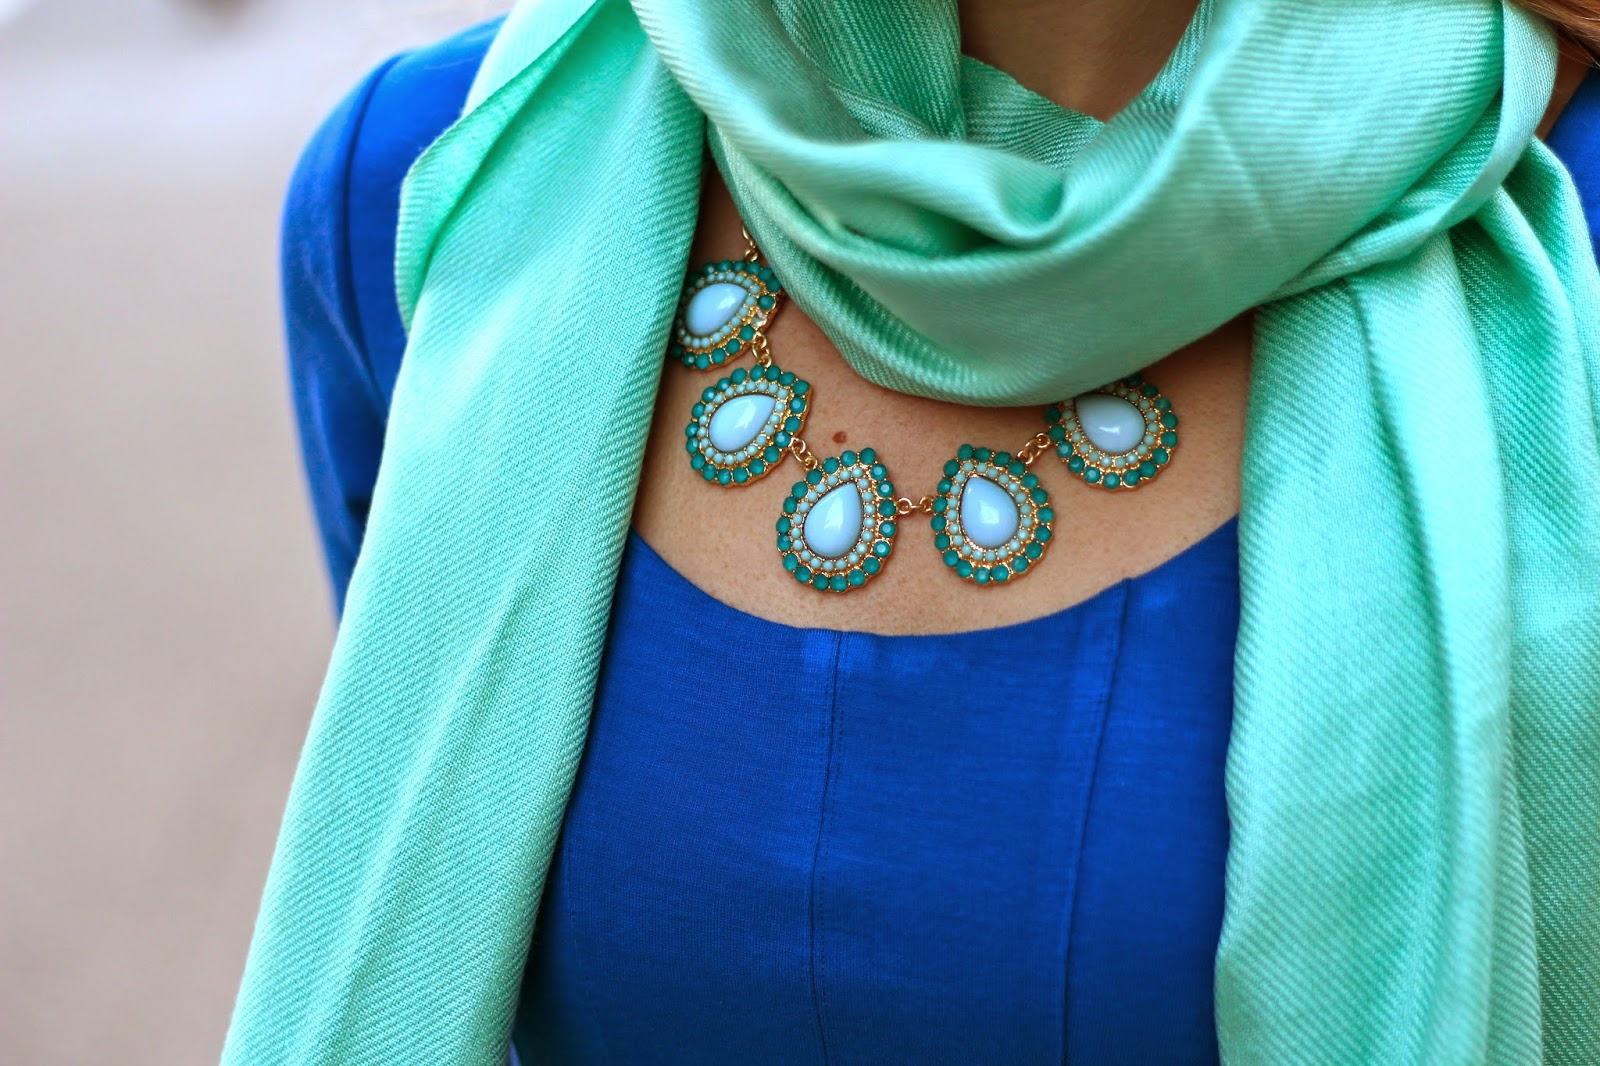 Dress C O Tart Collections Scarf Cutest Wedding Gift Idea To Keep Us Warm For Tail Hour Similar Necklace Elle Lauri